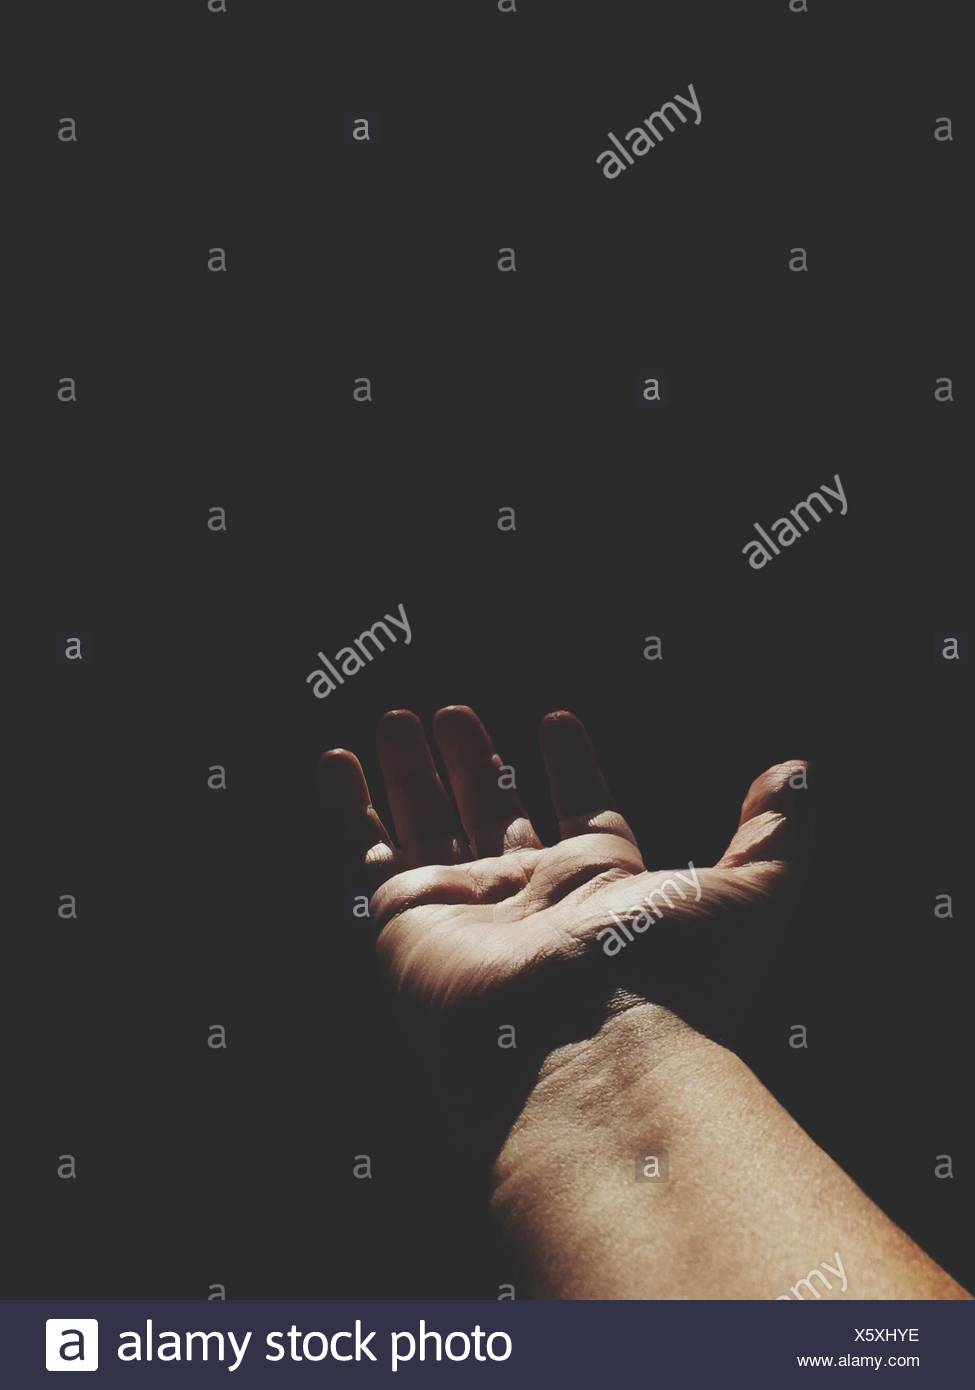 Cropped Image Of Arm In Sunlight - Stock Image